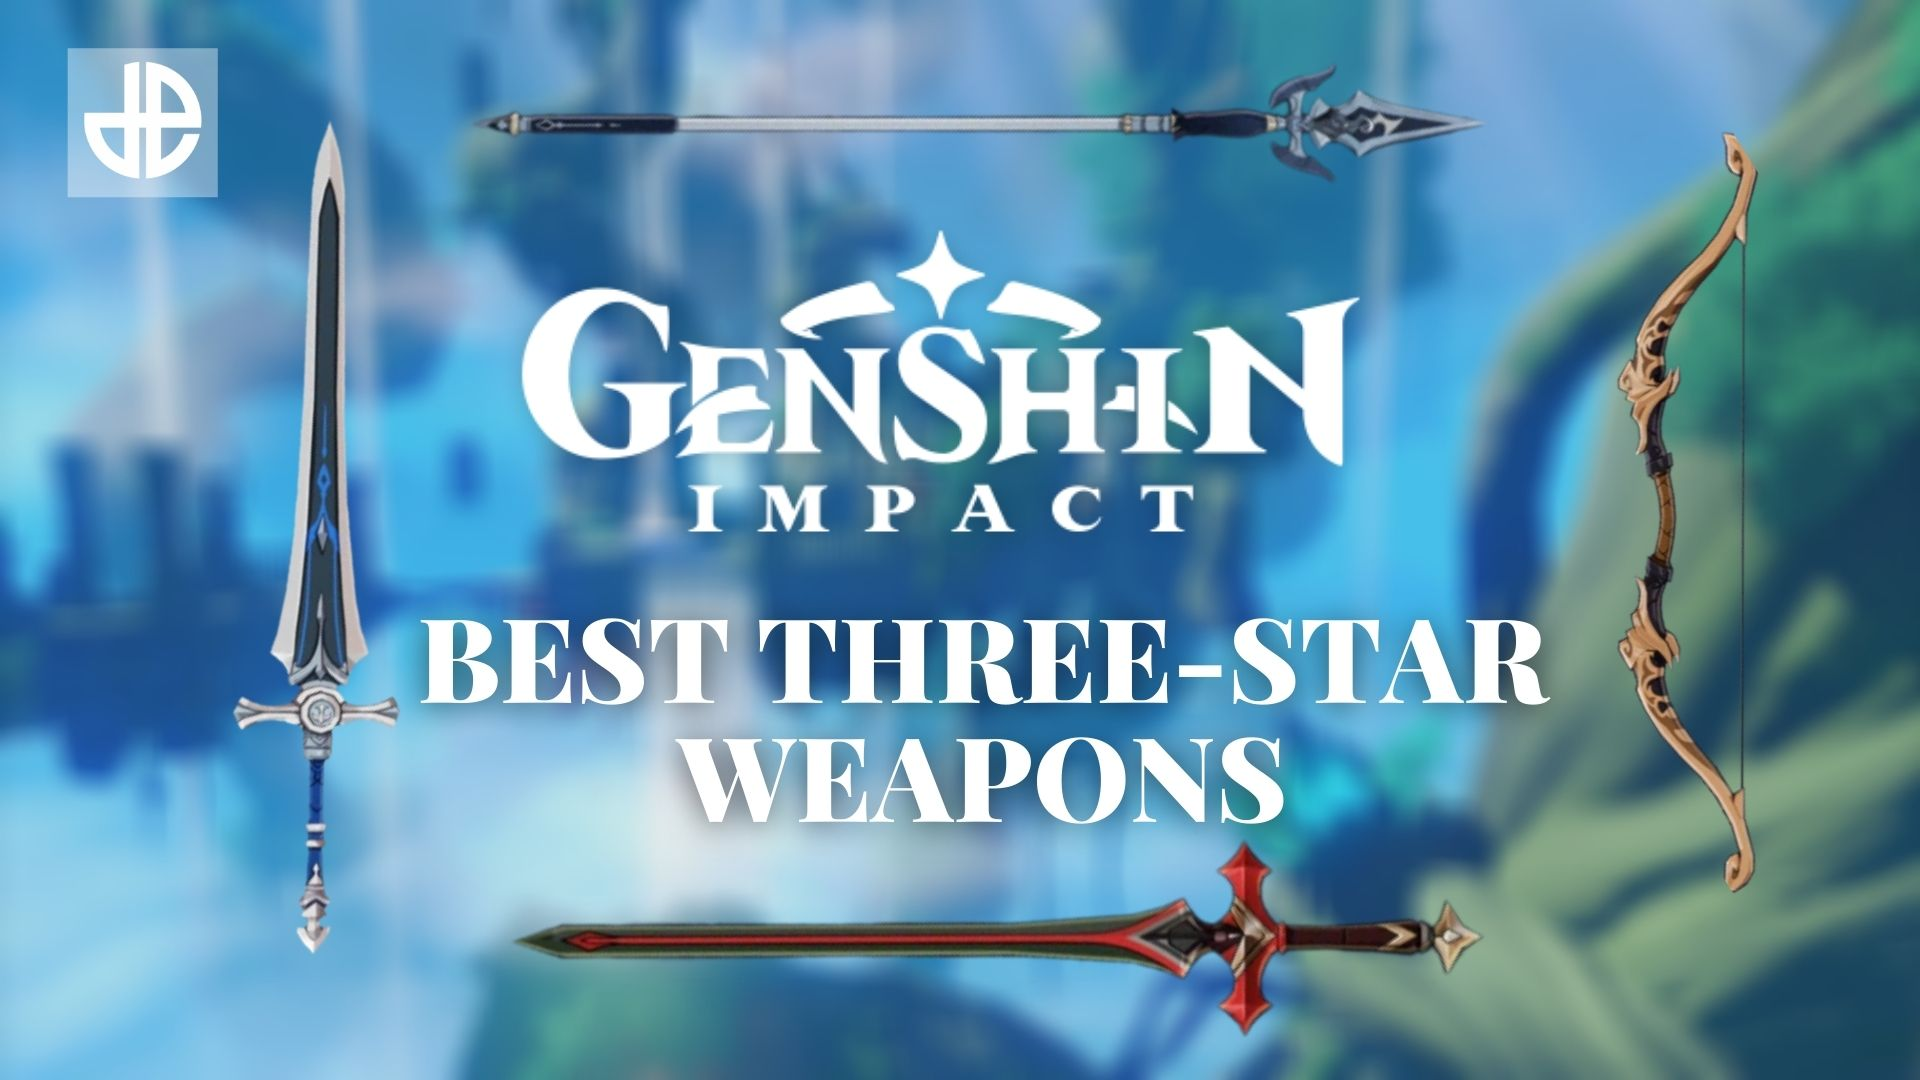 Genshin Impact weapon weapon feature image